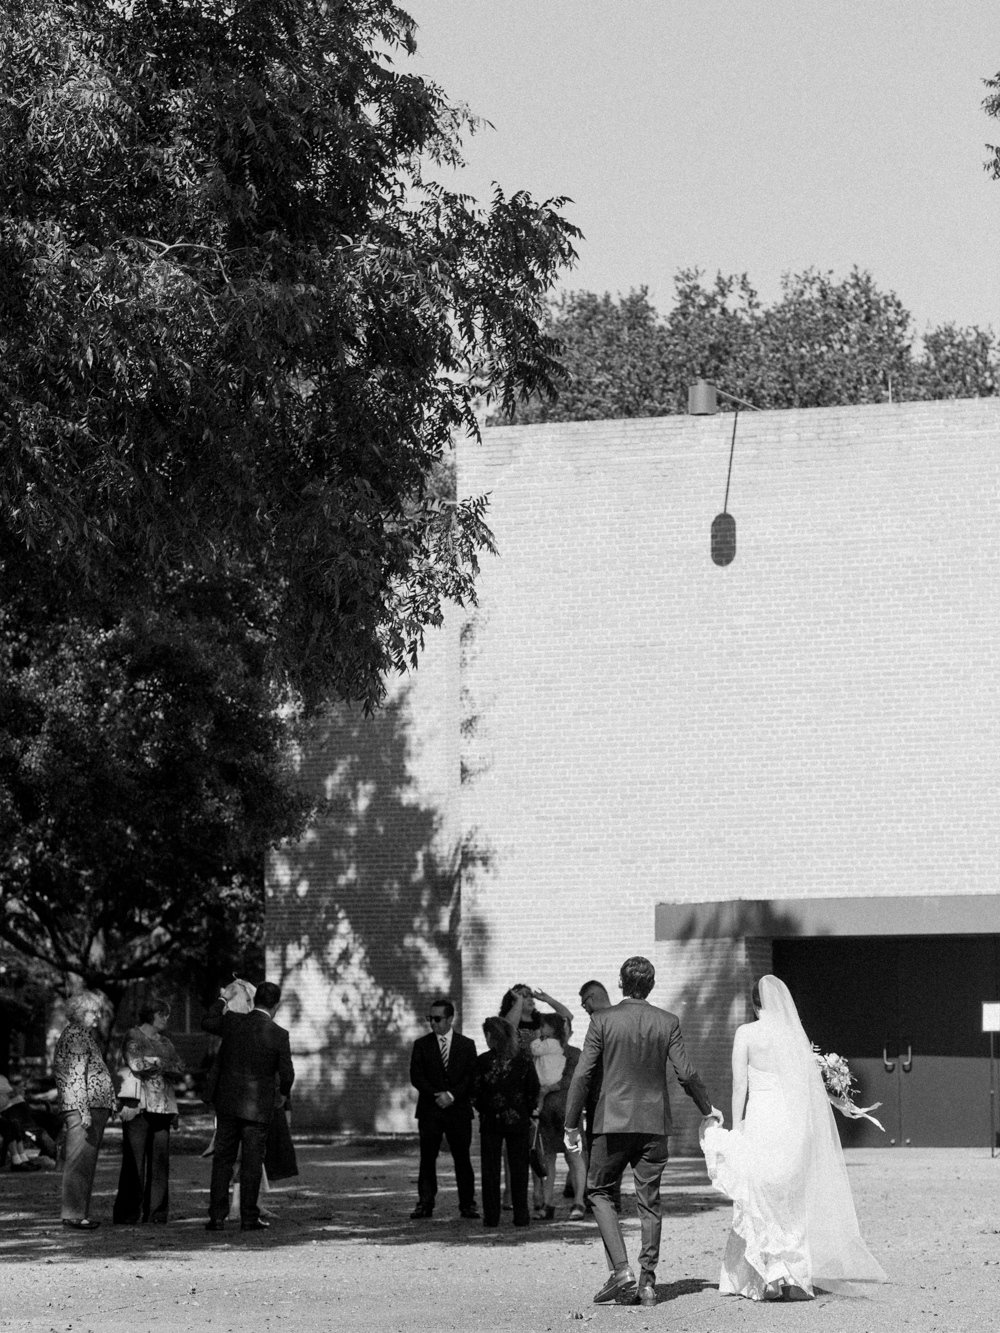 fall wedding at rothko chapel- houston wedding photographer-christine gosch - film photographer - elopement photographer- intimate wedding - lovely bride wedding gown-18.jpg